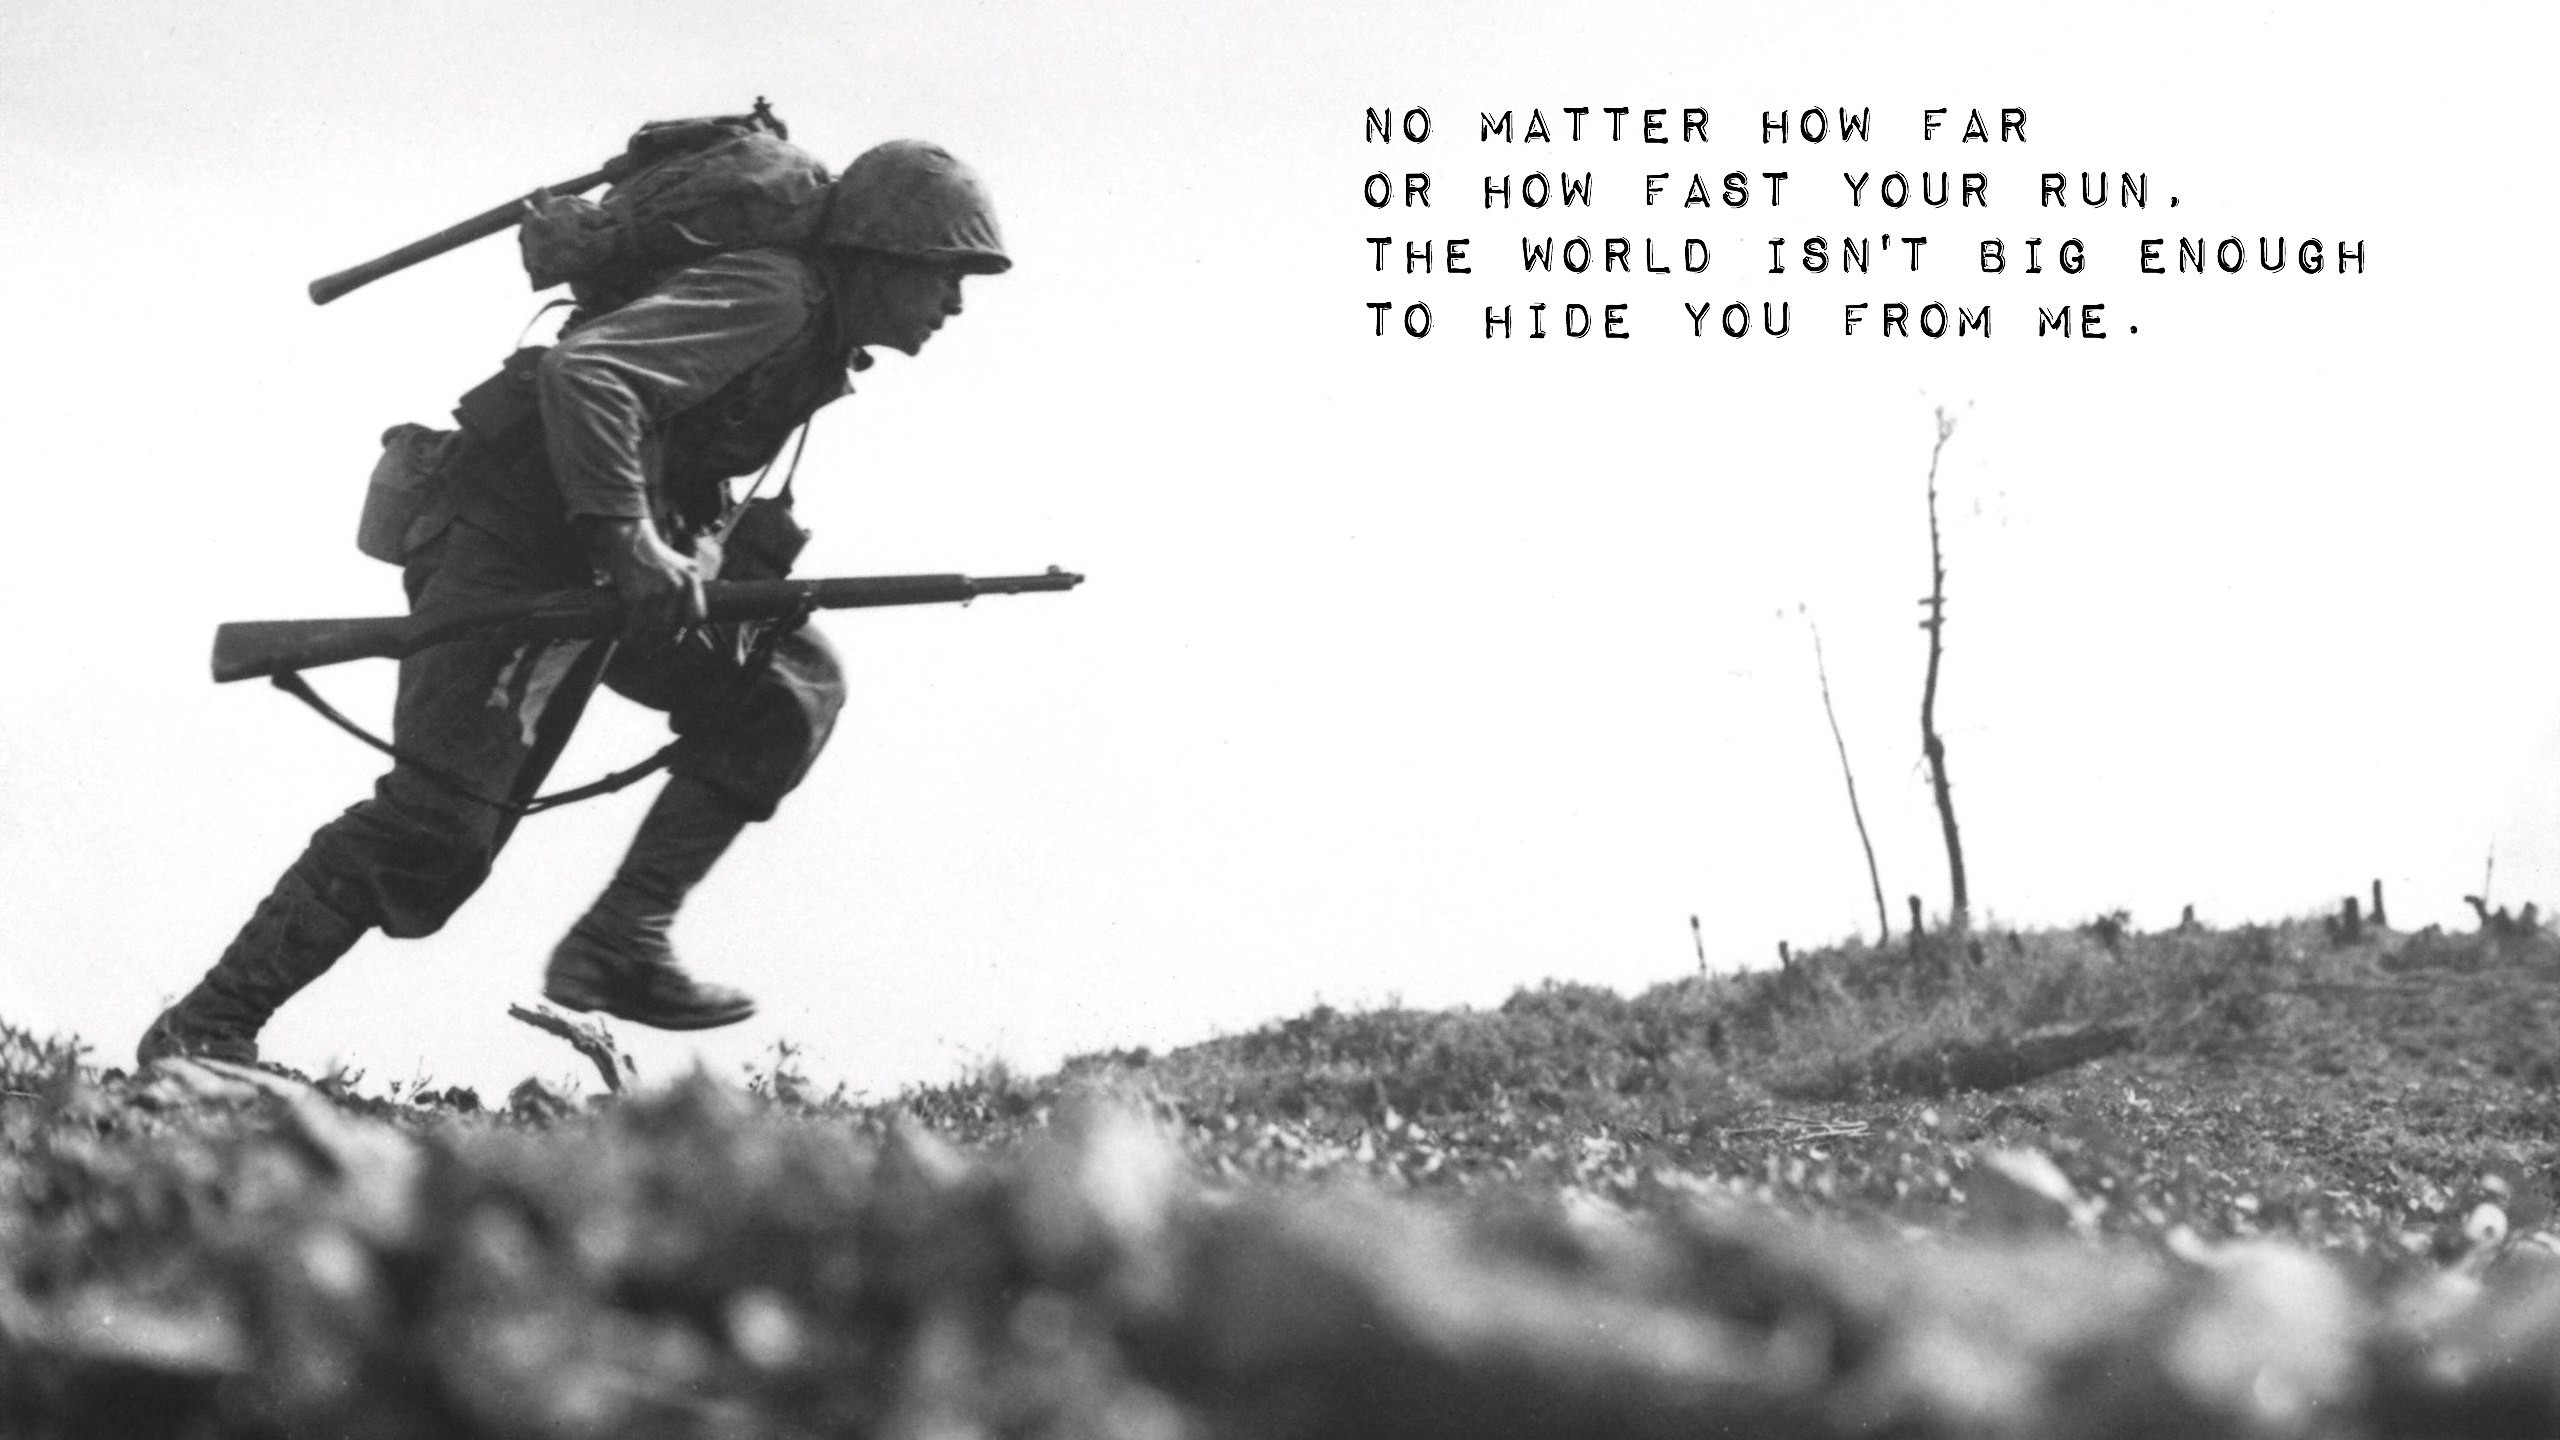 World war 2 wallpaper 61 images - World war 2 desktop wallpaper ...